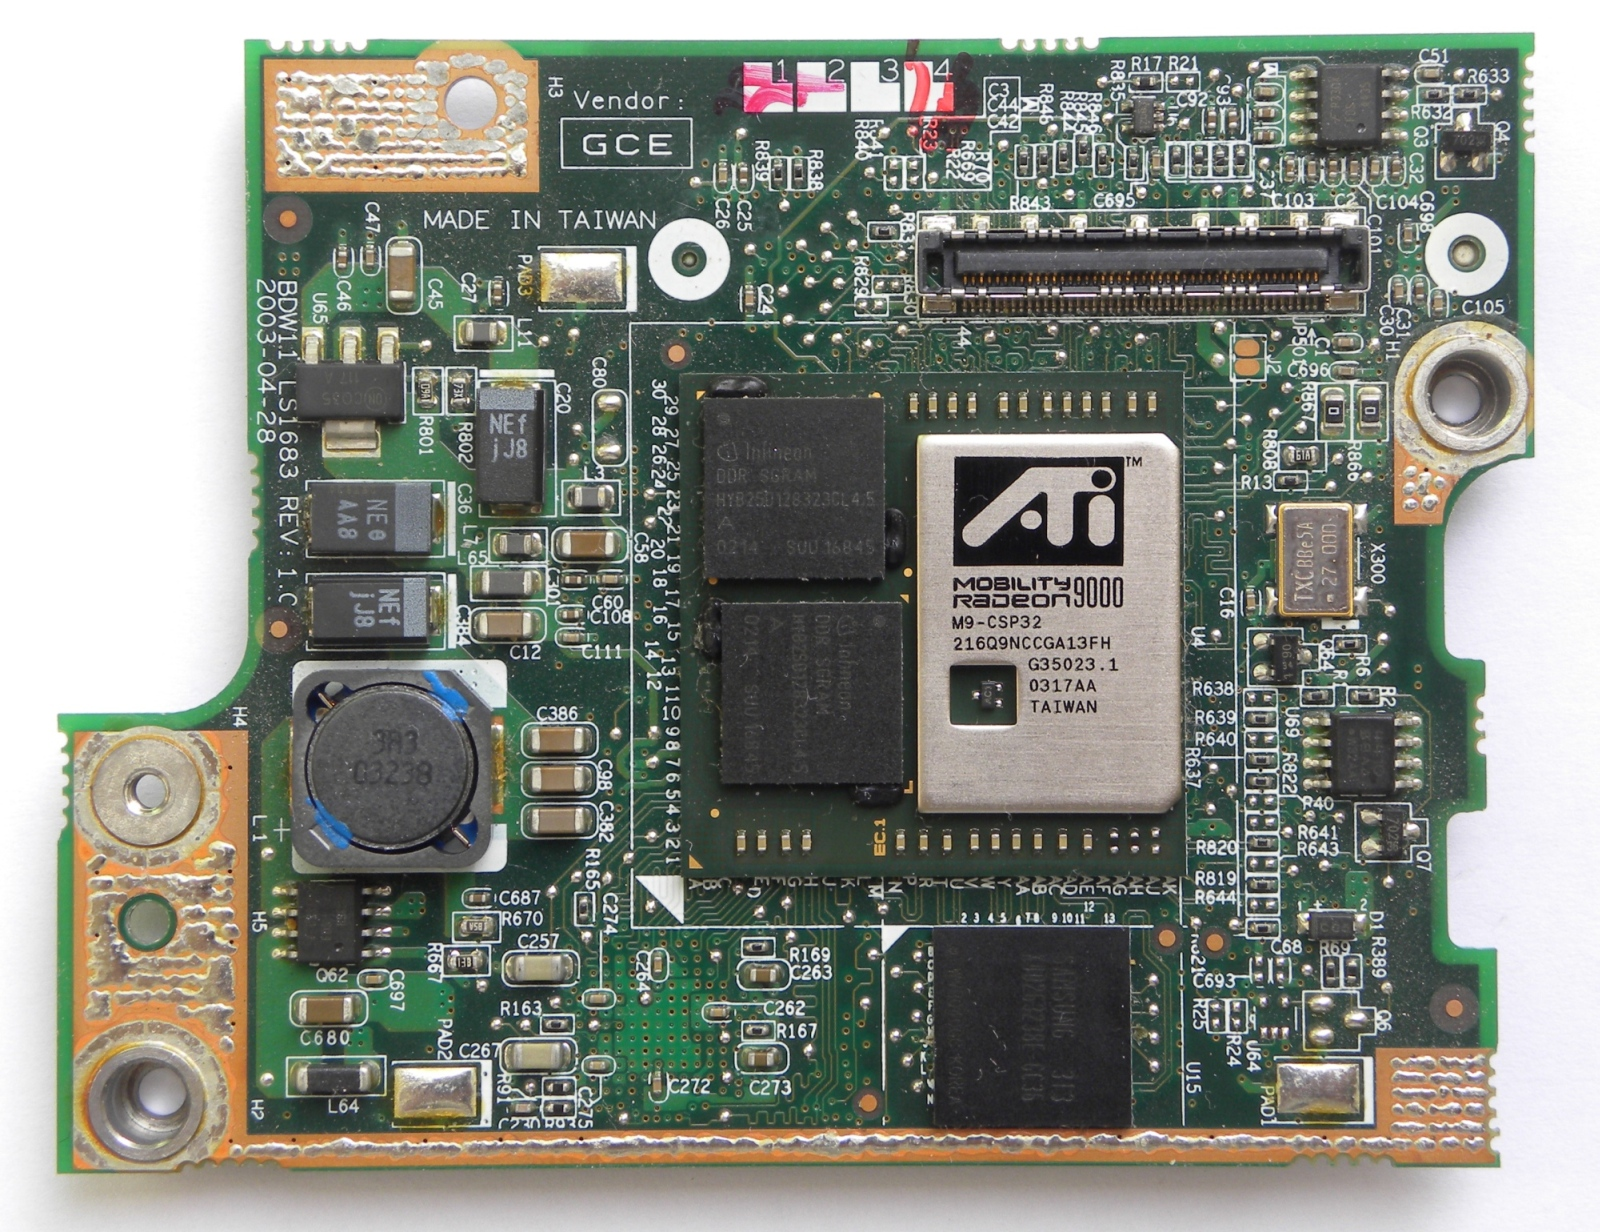 Ati Mobility Radeon 9600 M10 Driver Download